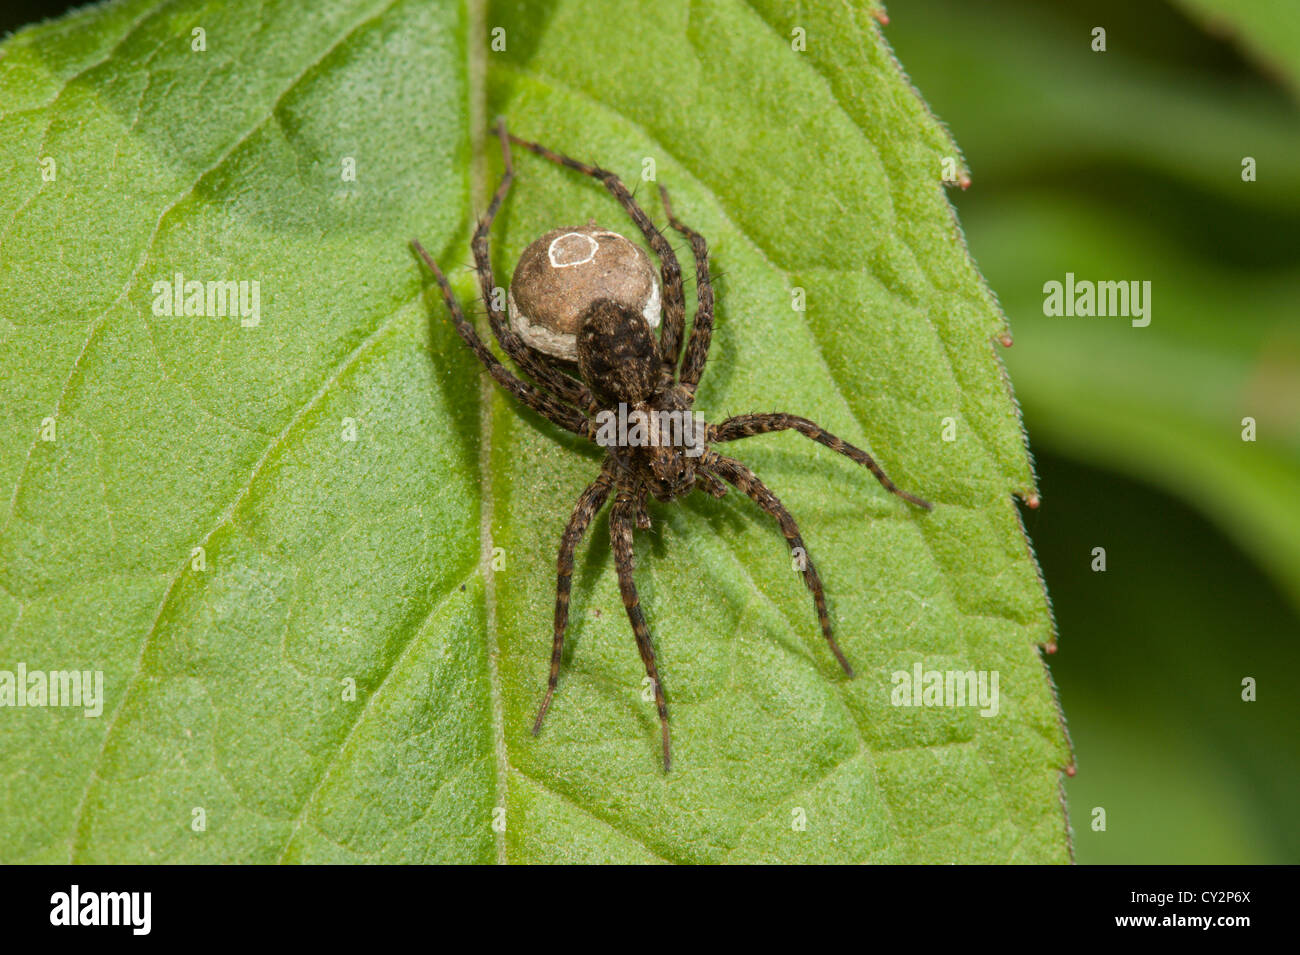 Orb Web Spider sunning itself on a leaf. - Stock Image